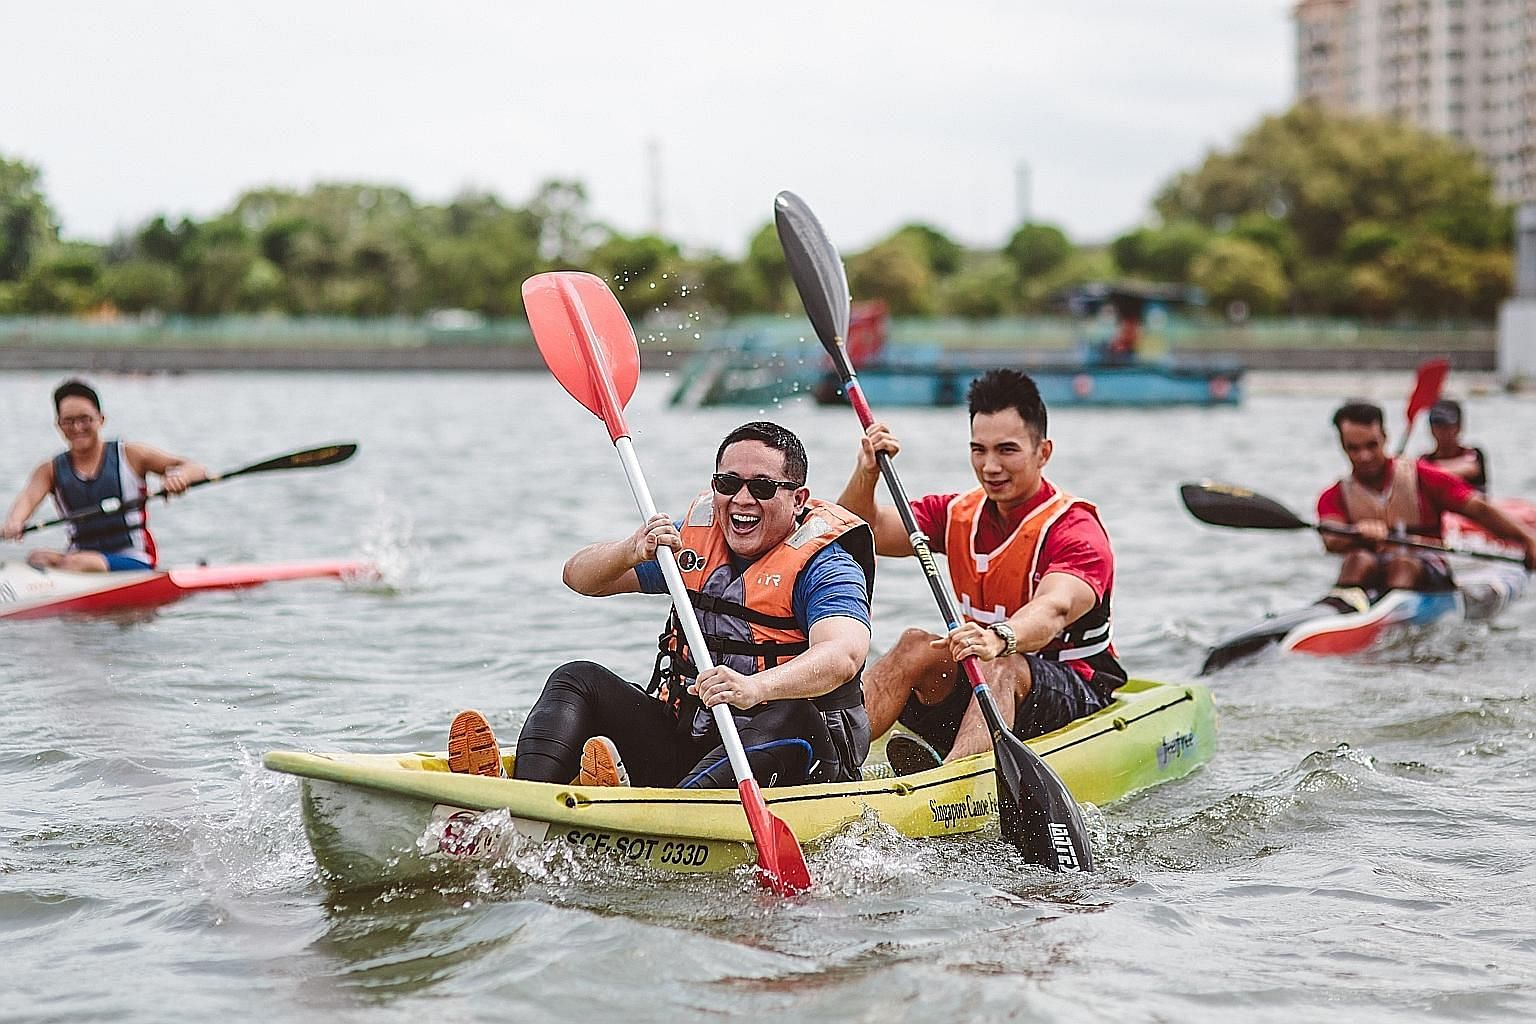 Some 800 competitors aged between seven and 60 took part in this year's Singapore Canoe Marathon at the Sports Hub's Water Sports Centre yesterday. The blazing conditions failed to dampen the spirits of the competitors, who paddled between 6km and 30